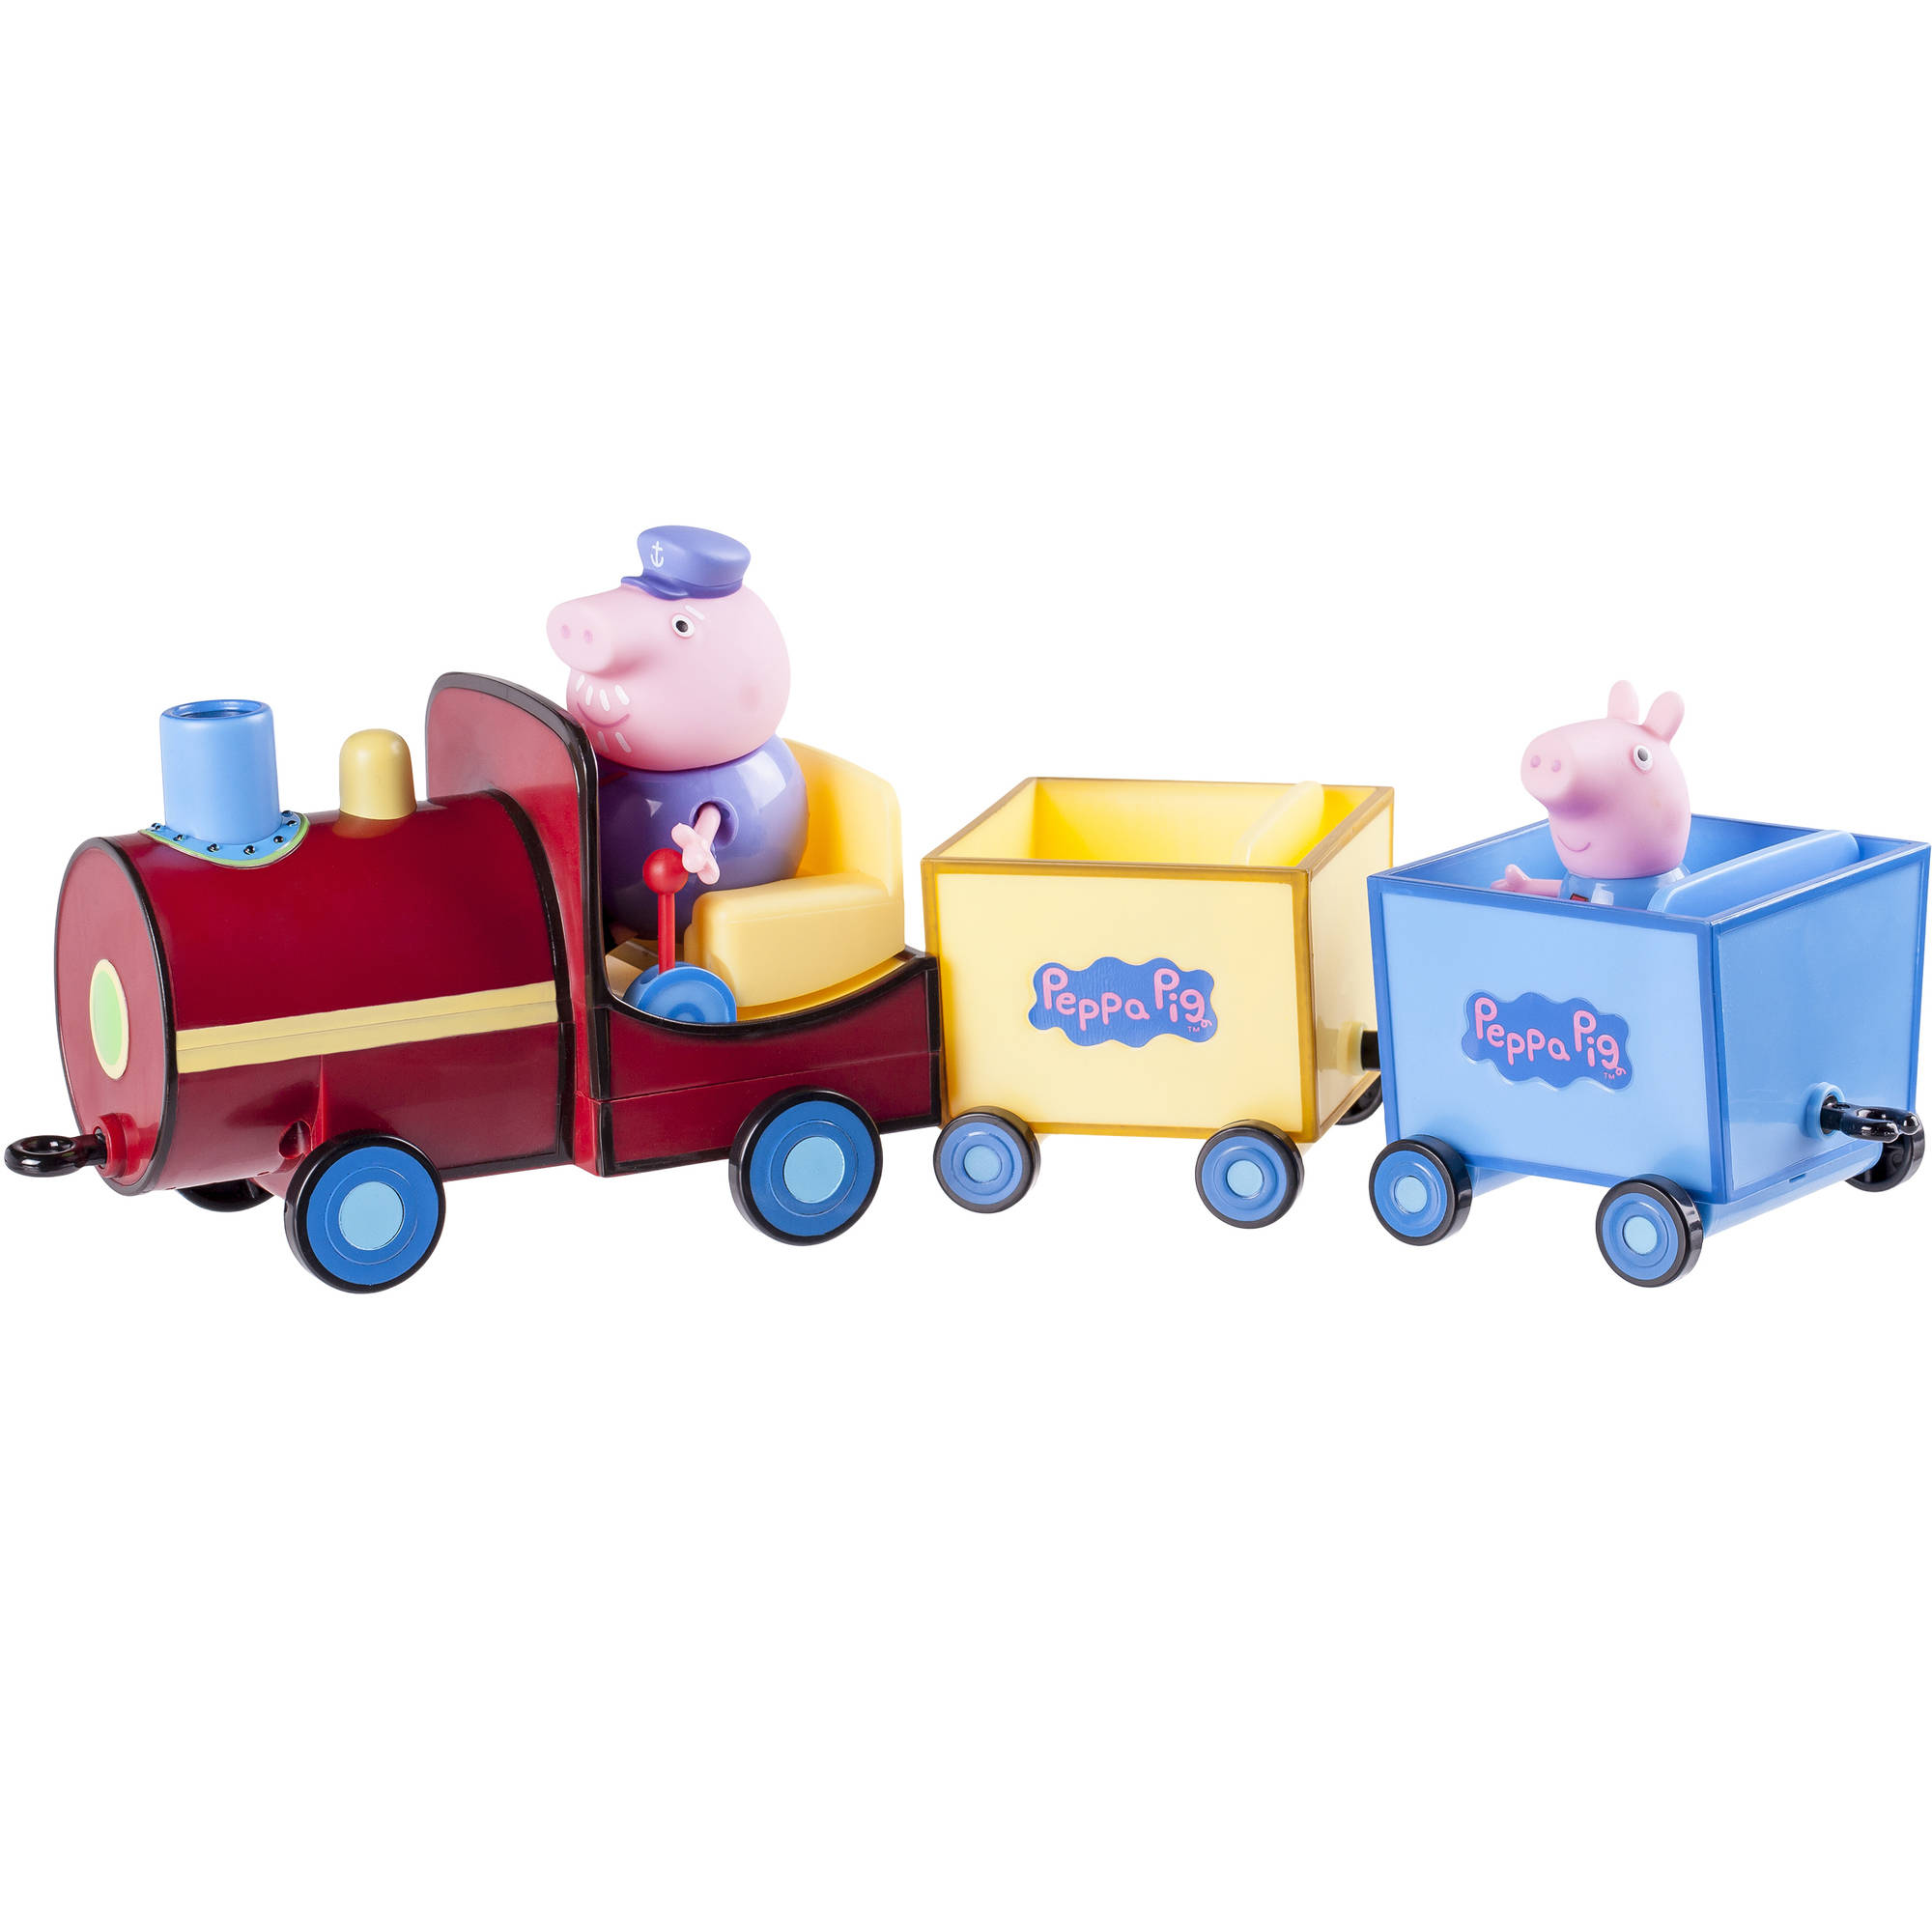 Peppa Pig Grandpa Train with 3 Figures